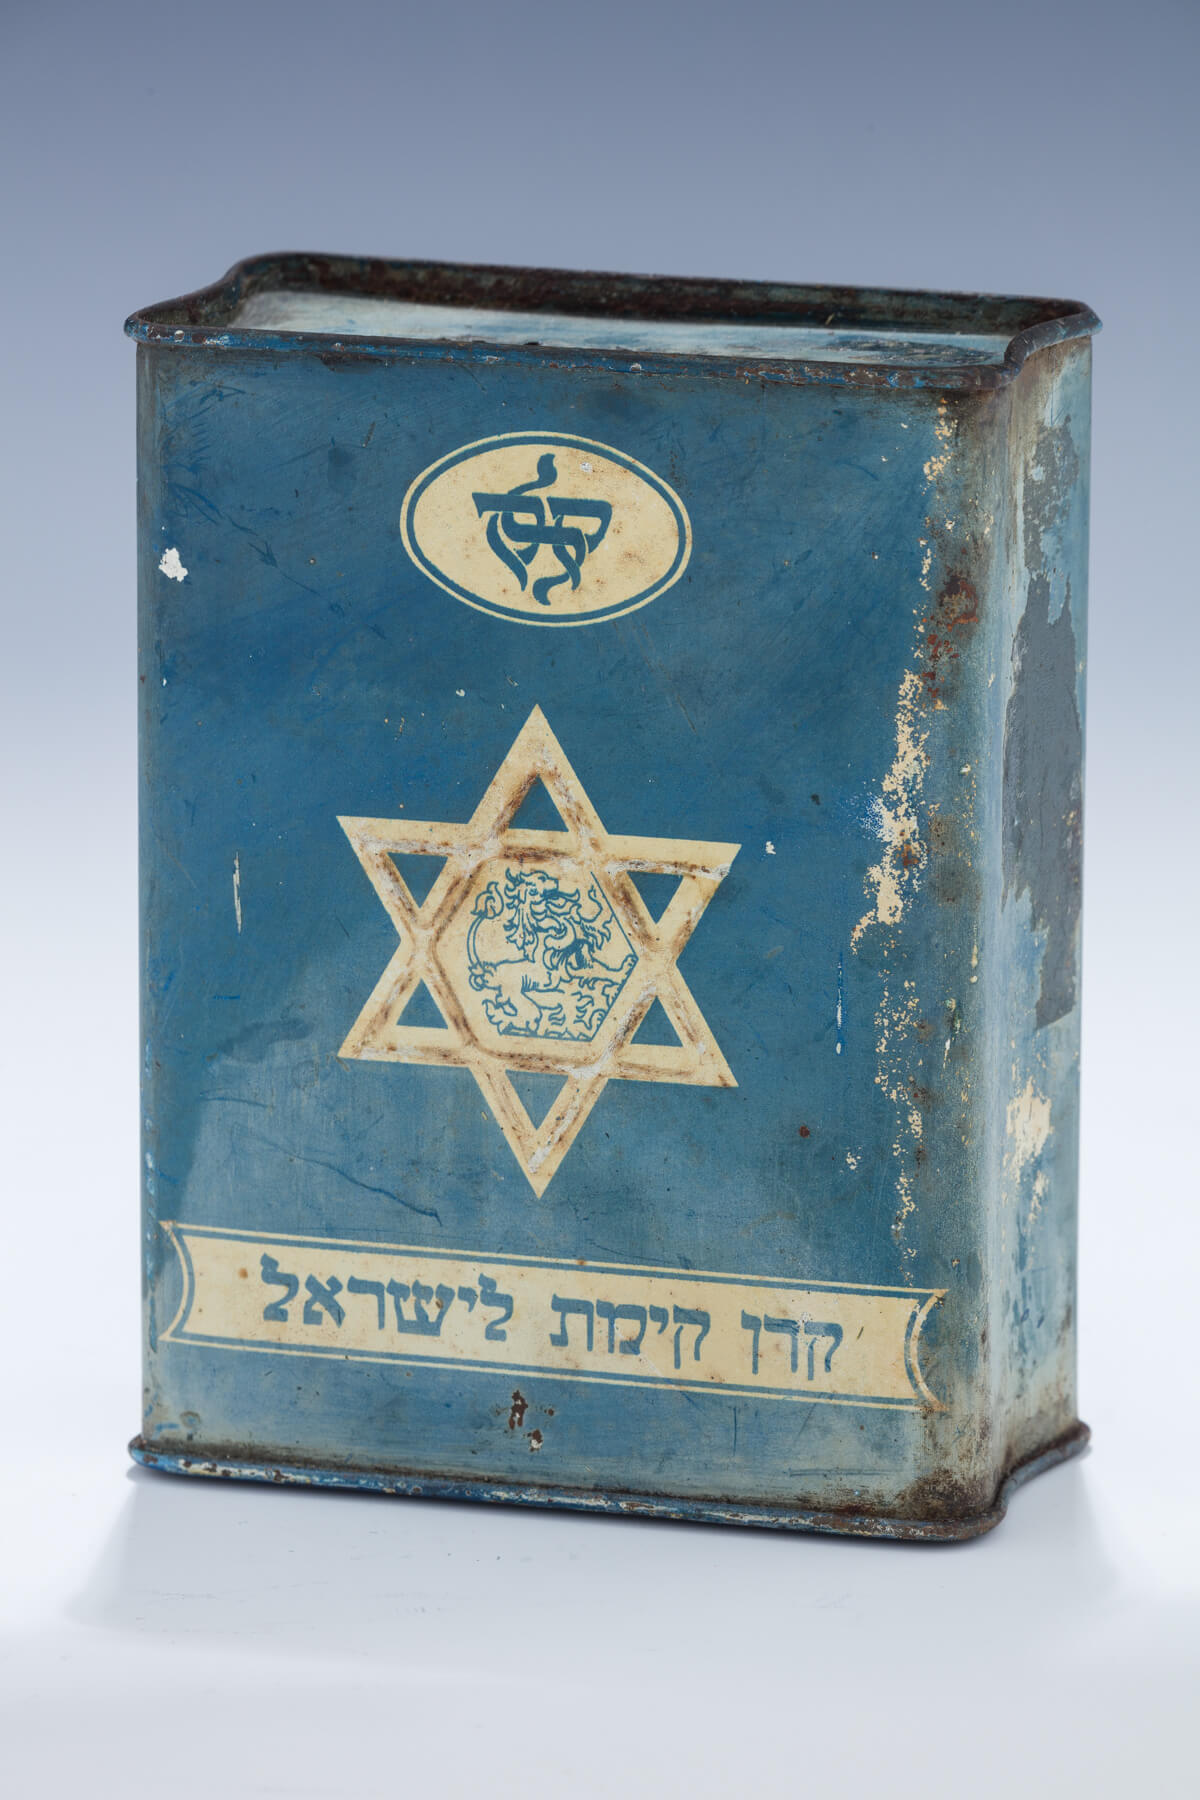 027. An Early Jnf/Kkl Tin Charity Container